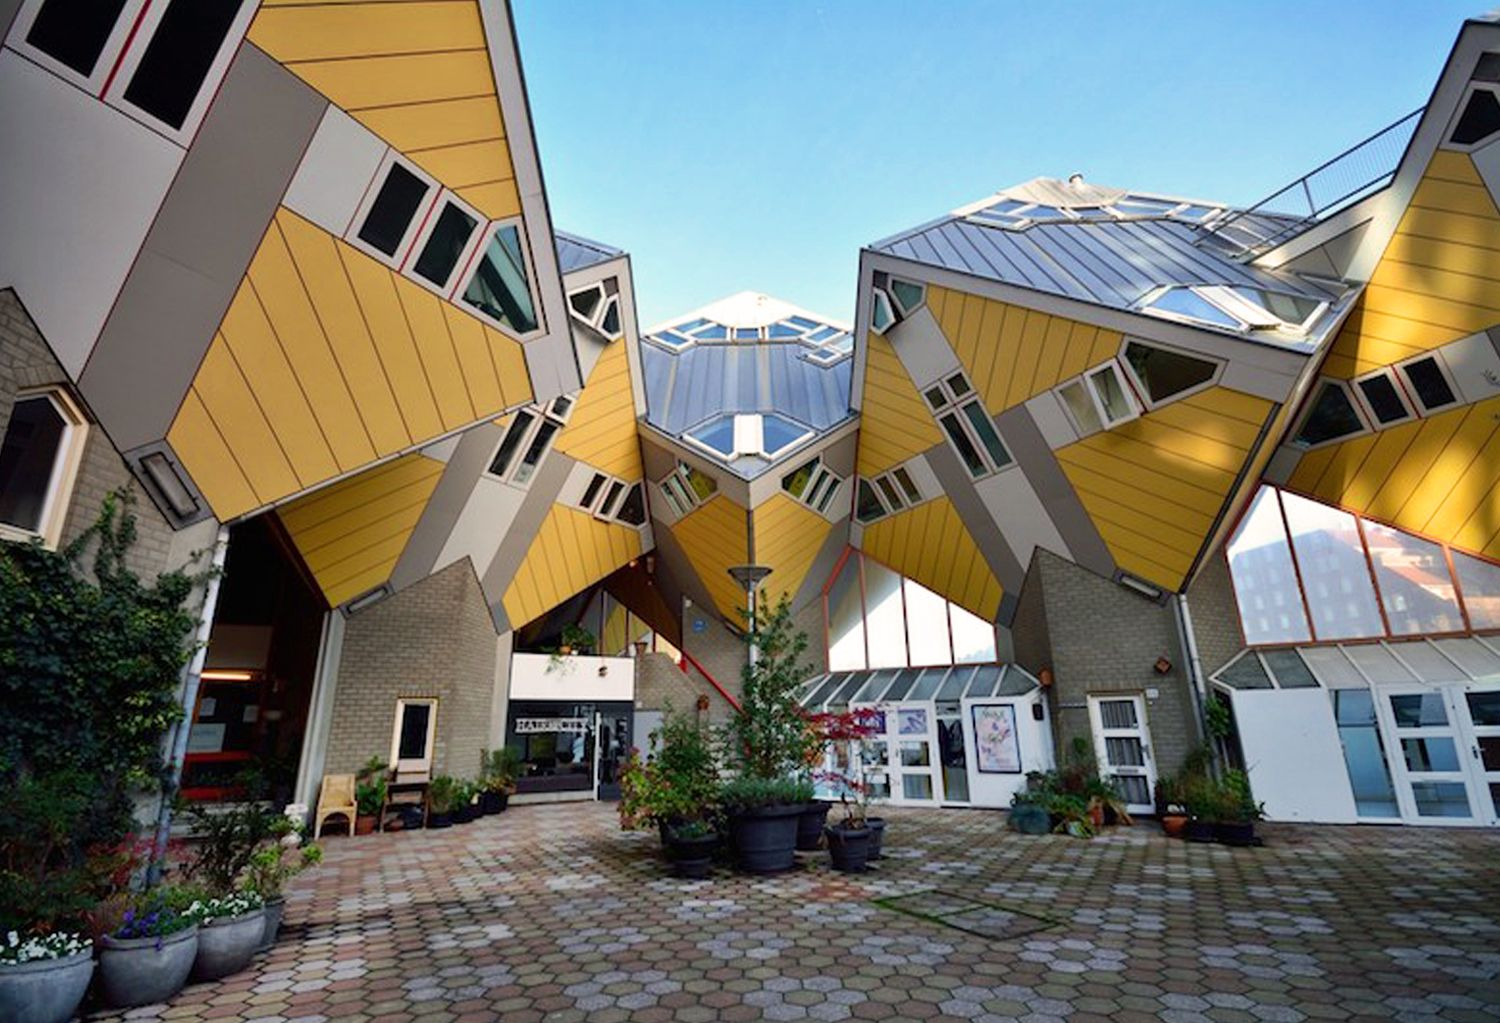 10 Impossibly Awesome Houses From All Around the World